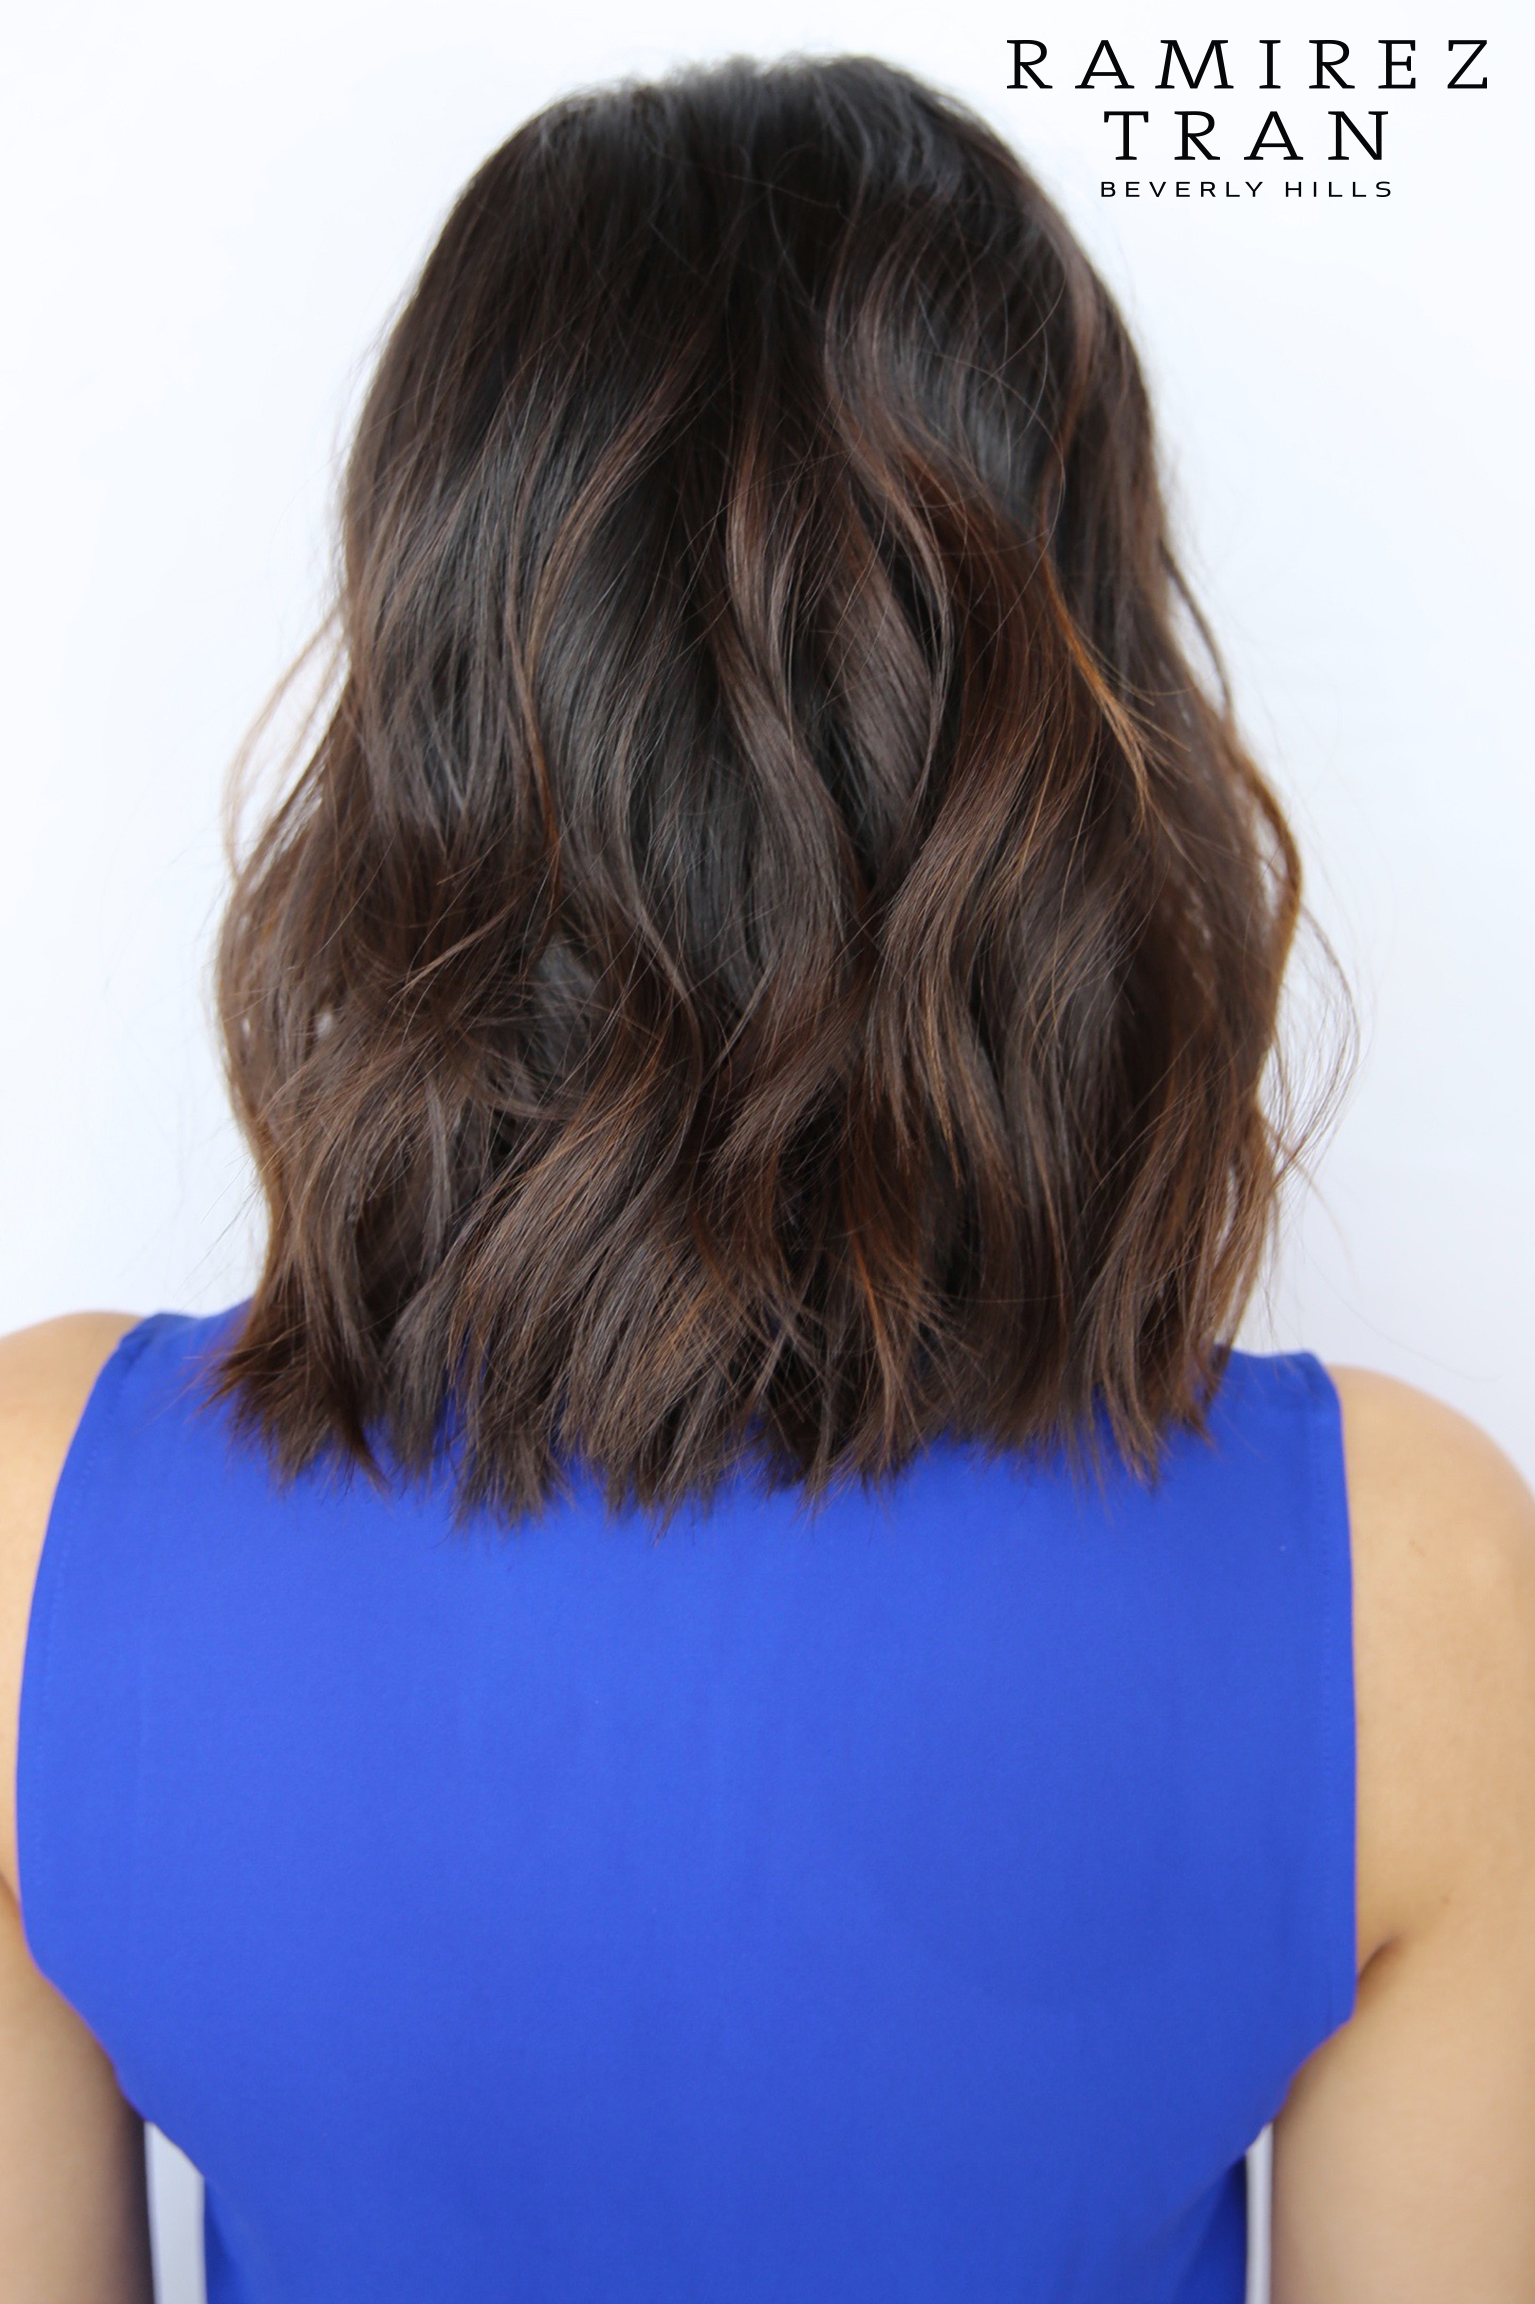 Subtle Highlights On Brunette Hair Archives Ramirez Tran Salon